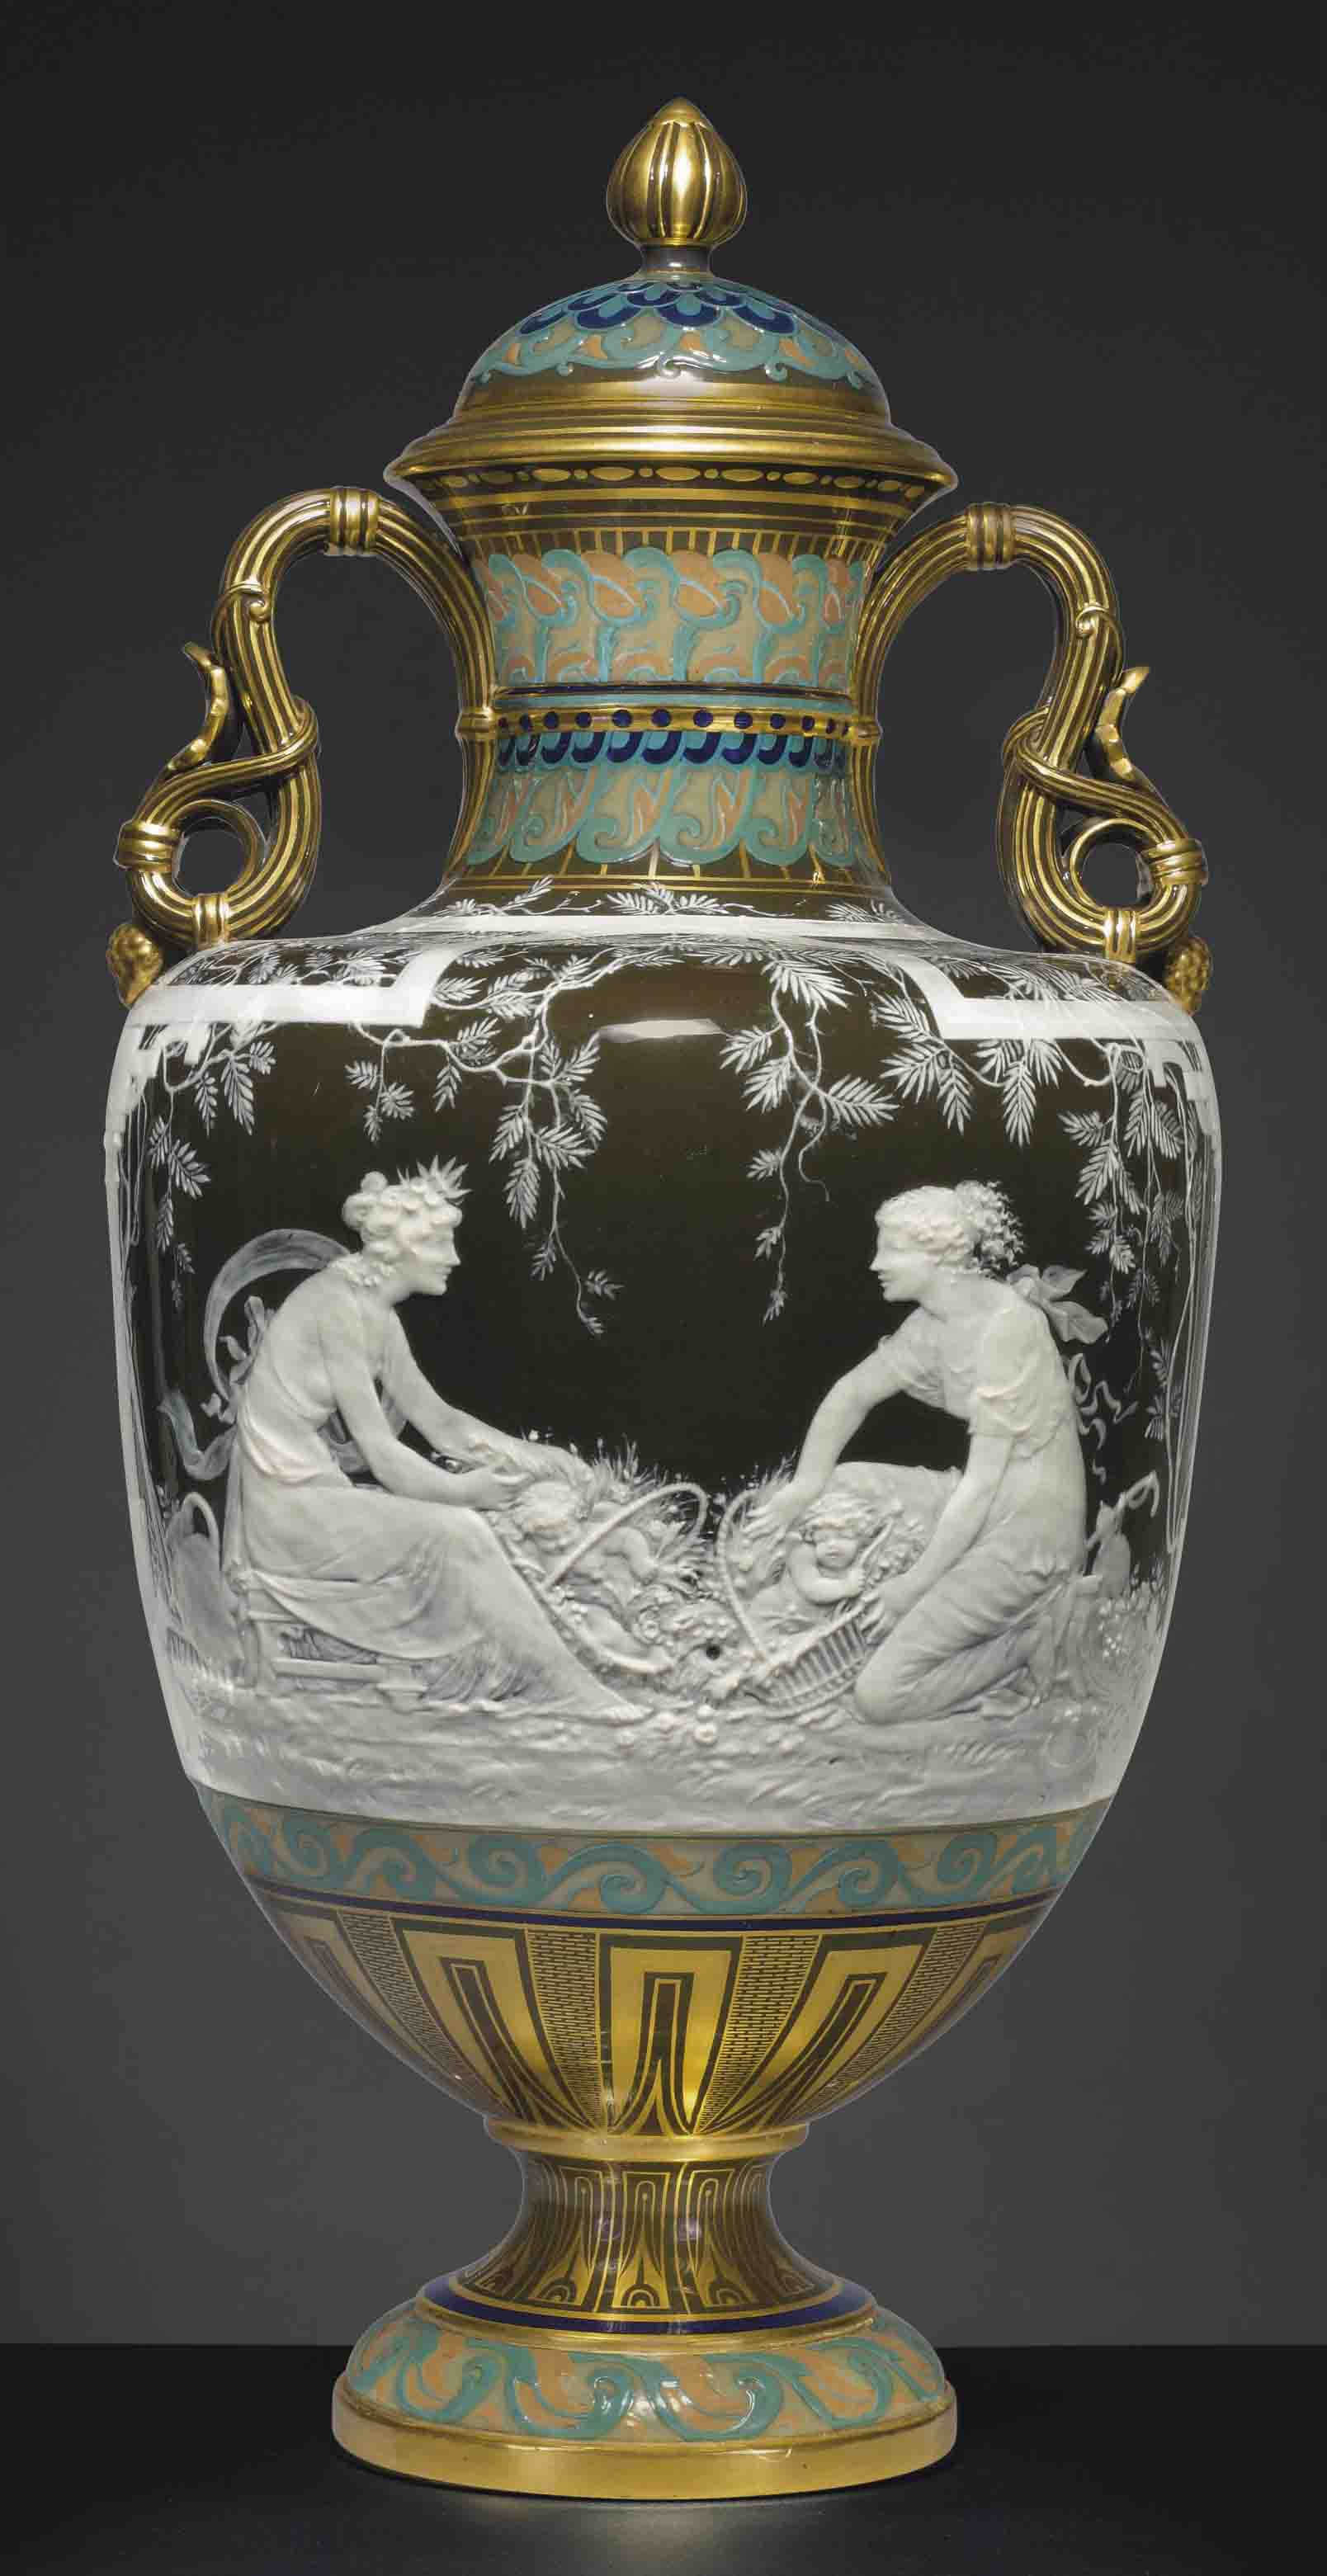 A Minton pâte-sur-pâteolive-brown two-handled vase and cover, 'Comparaison', circa 1892. 21⅛ in (53.6  cm) high (2). Sold for $134,500 on 20 October 2011 at Christie's in New York